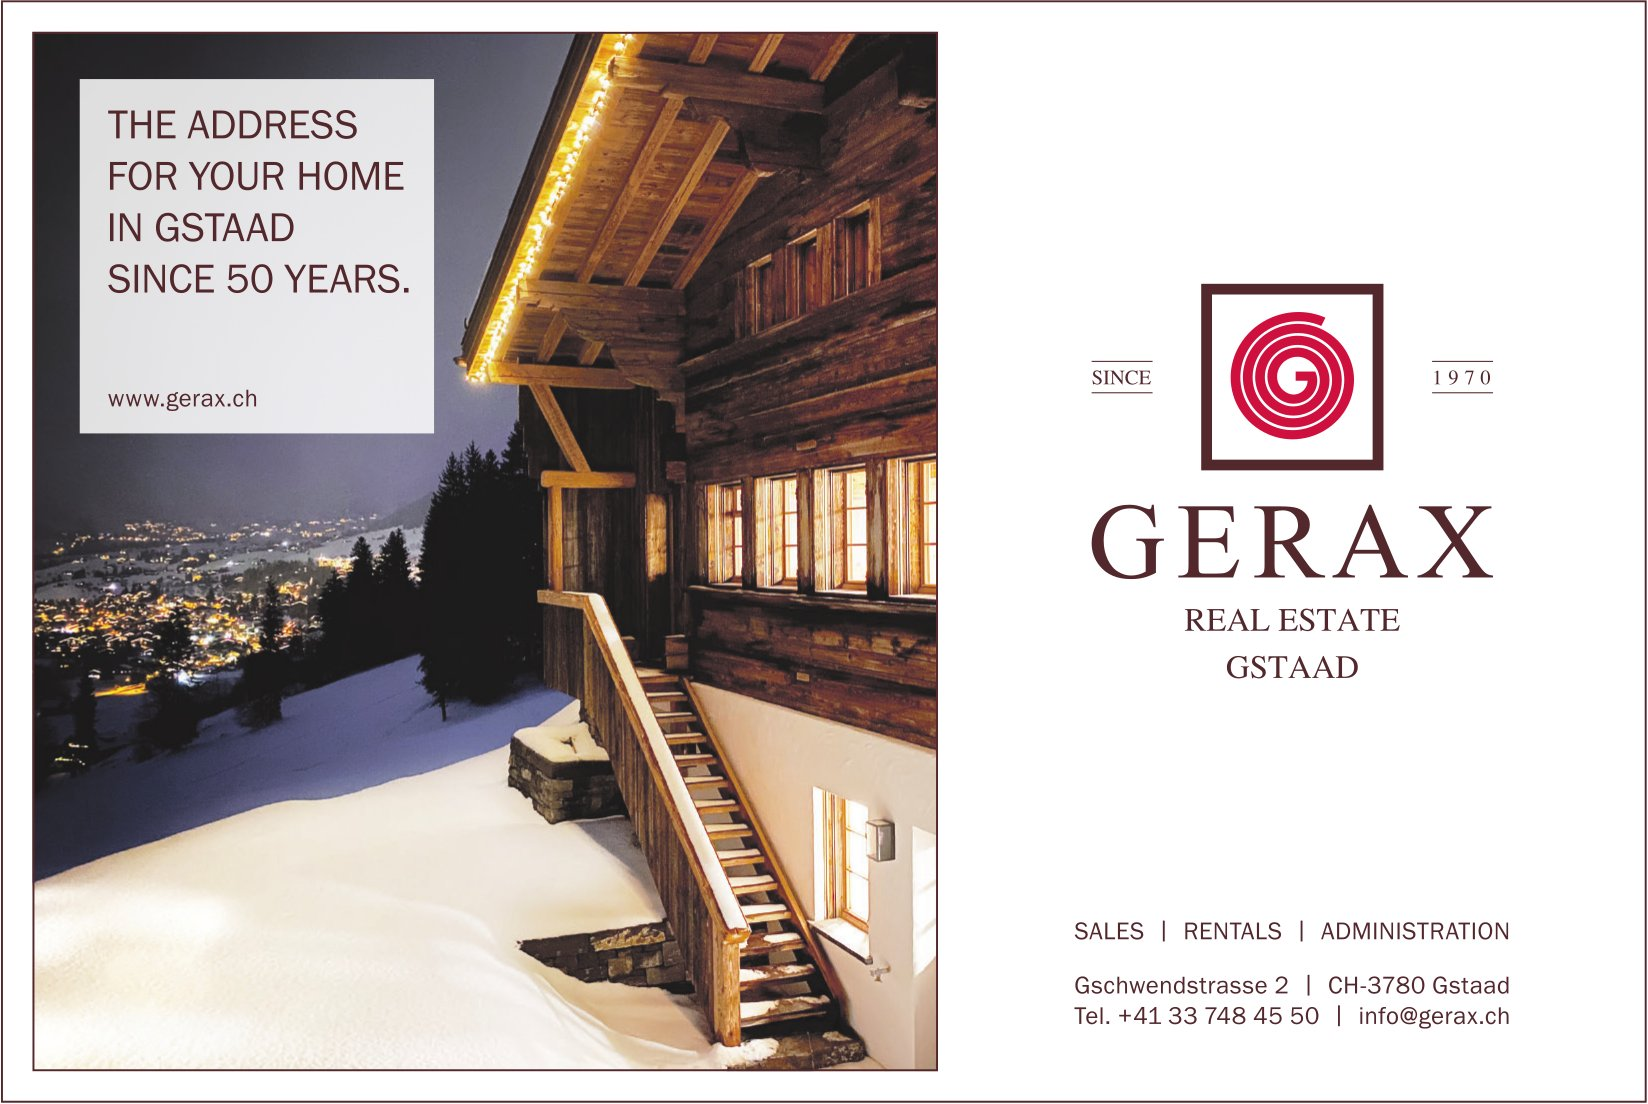 GERAX REAL ESTATE,  Gstaad, THE ADDRESS FOR YOUR HOME IN GSTAAD SINCE 50 YEARS